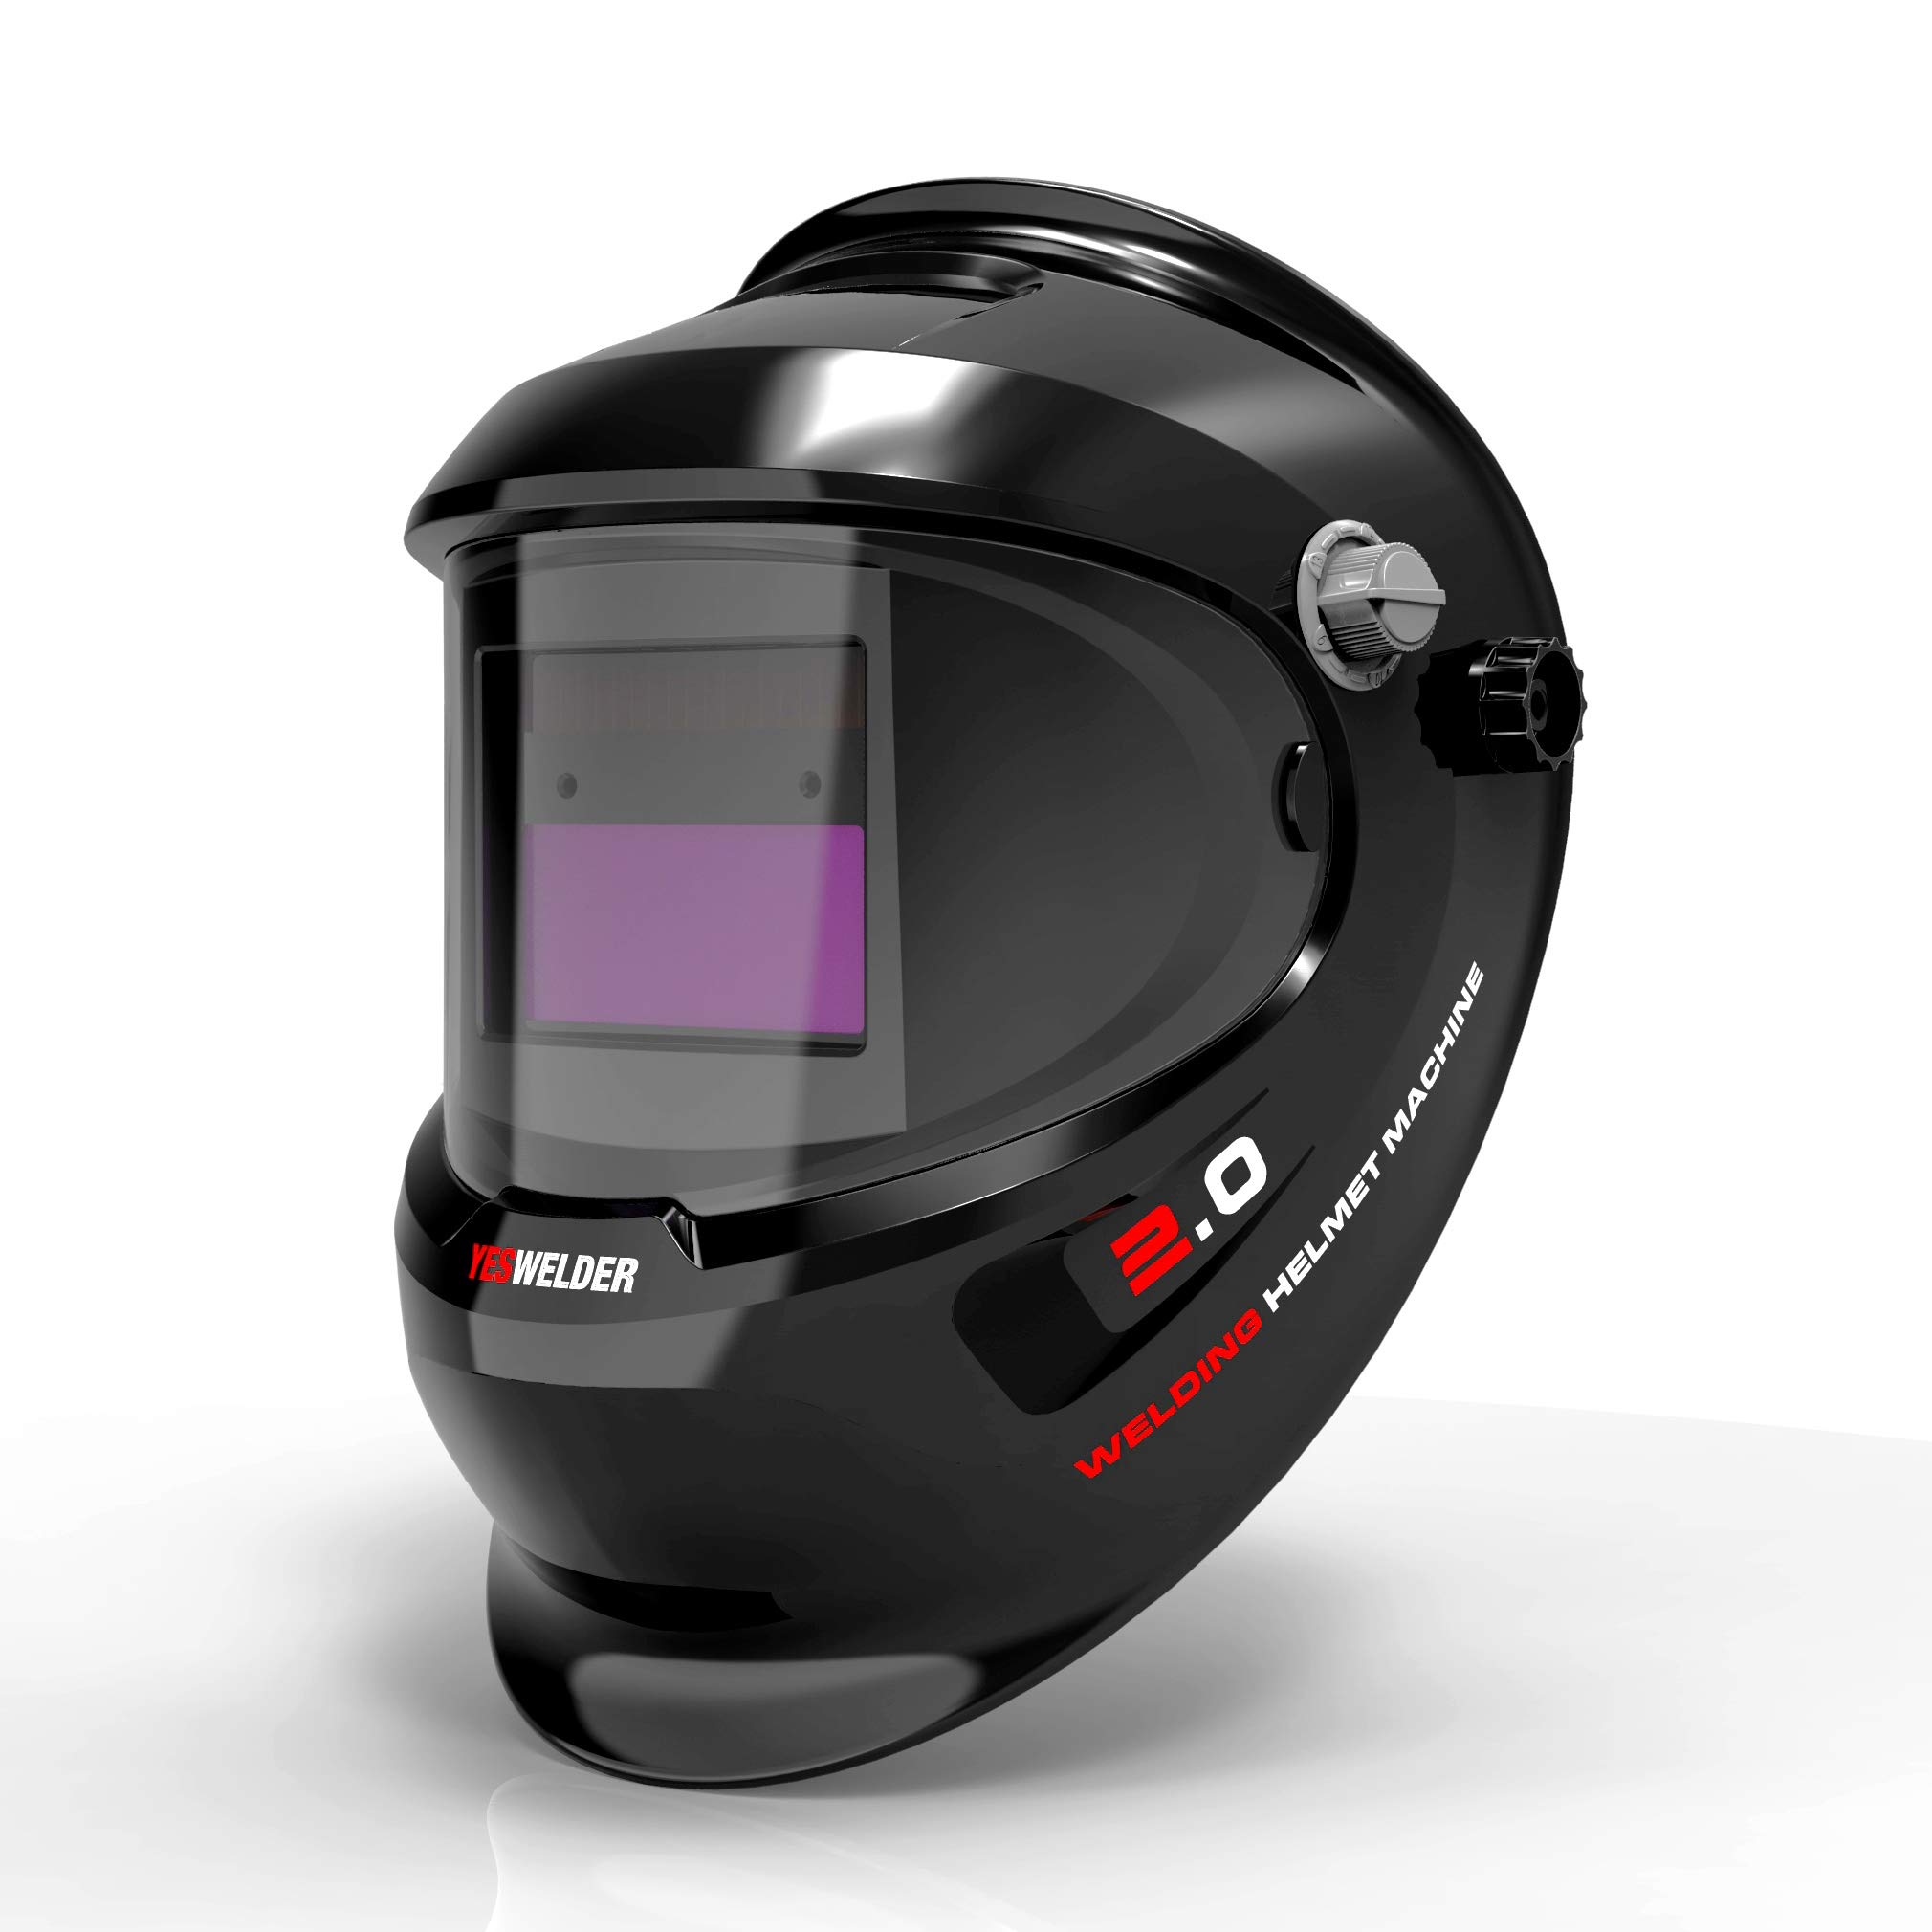 YESWELDER True Color Solar Power Auto Darkening Welding Helmet,2 Arc Sensor 4/5-9 Welder Mask for TIG MIG Arc Weld Grinding Weld Hood